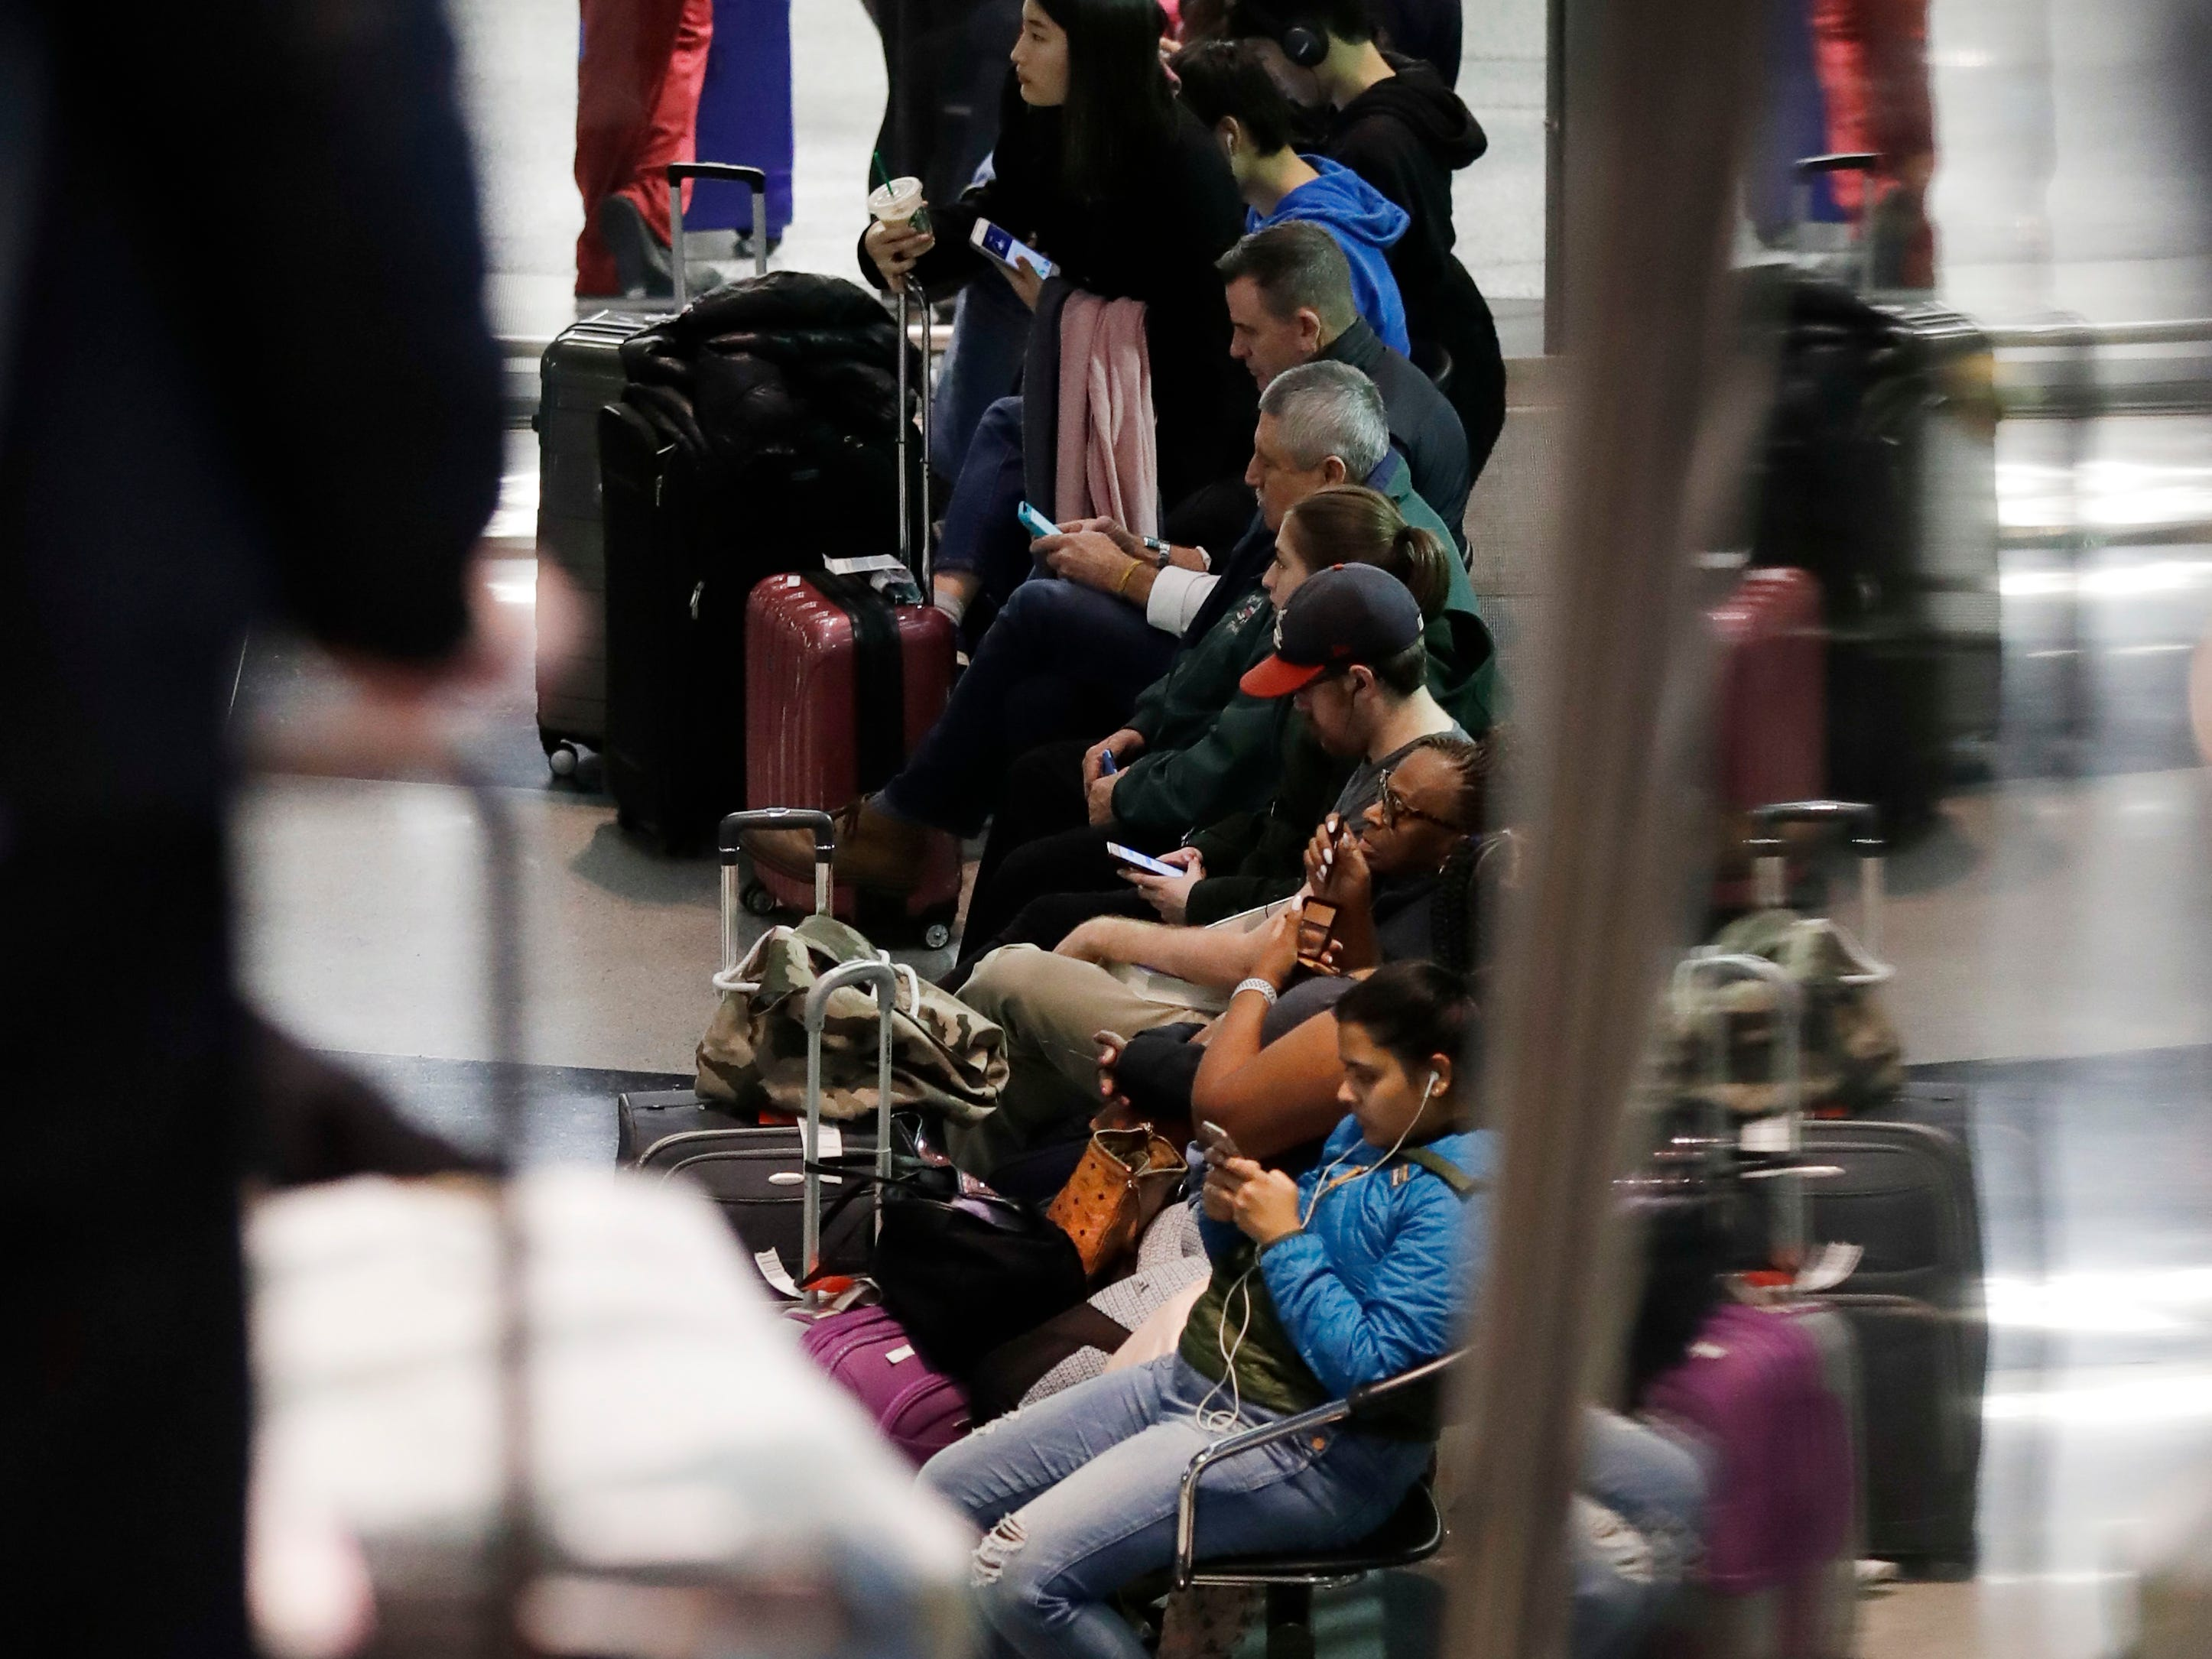 Passengers sit as they wait for their flight at O'Hare airport in Chicago, Sunday, Nov. 25, 2018.